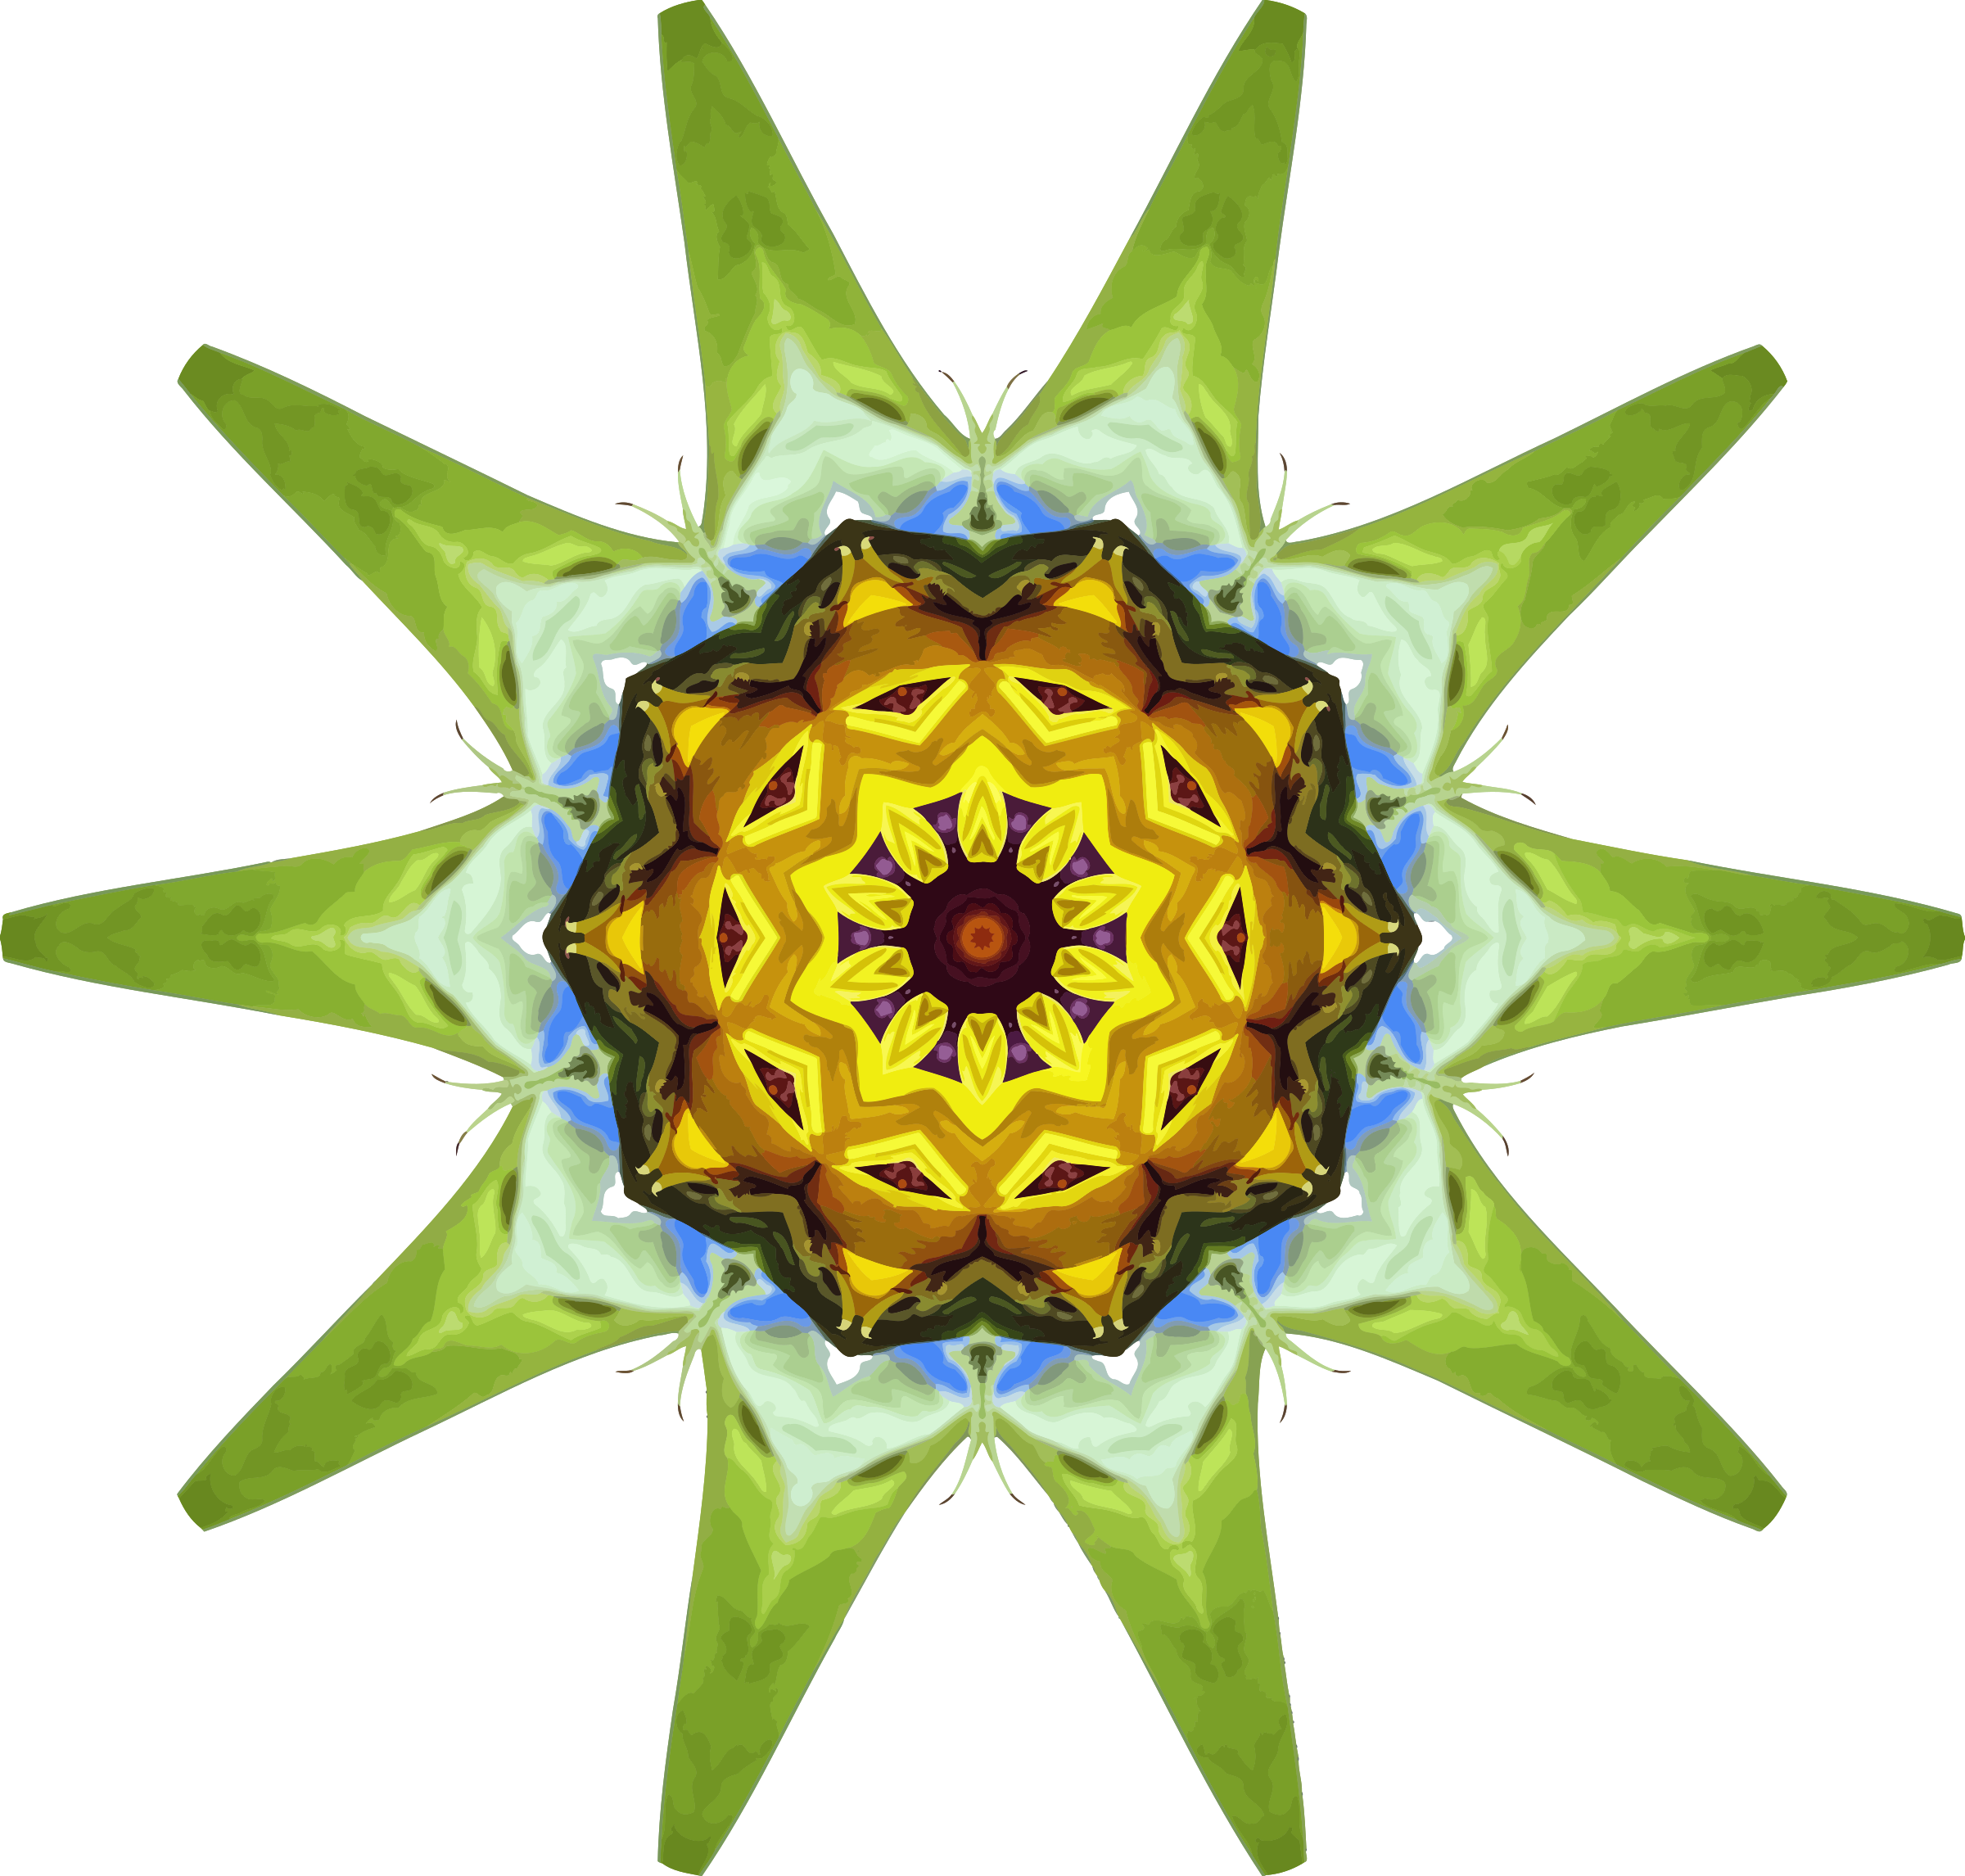 Sunflower kaleidoscope 20 by Firkin